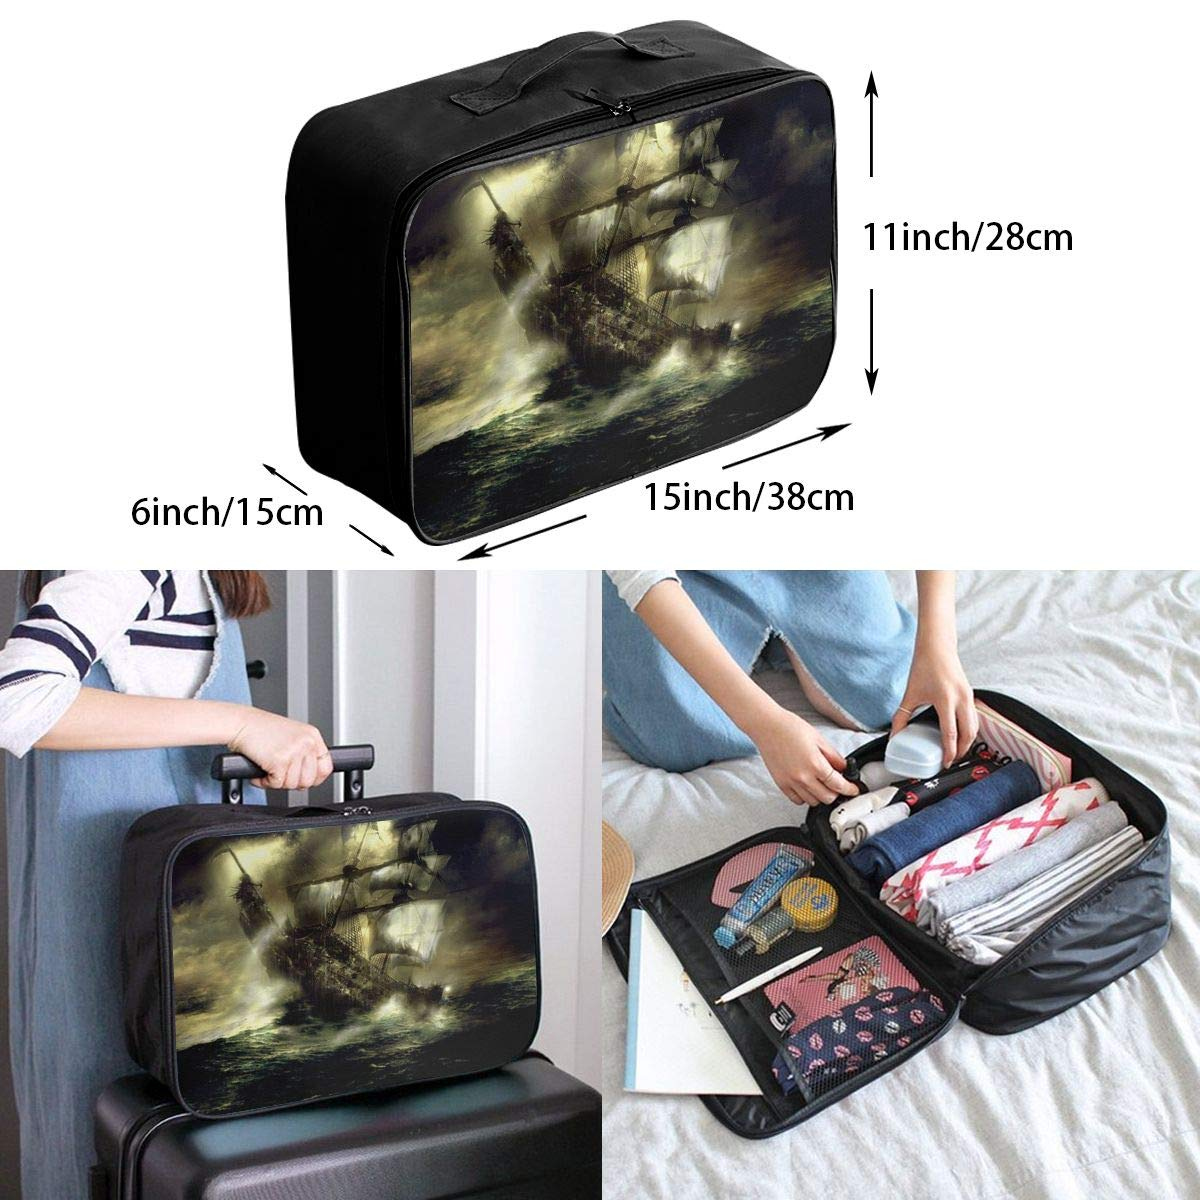 Travel Luggage Duffle Bag Lightweight Portable Handbag Ghost Ship Print Large Capacity Waterproof Foldable Storage Tote